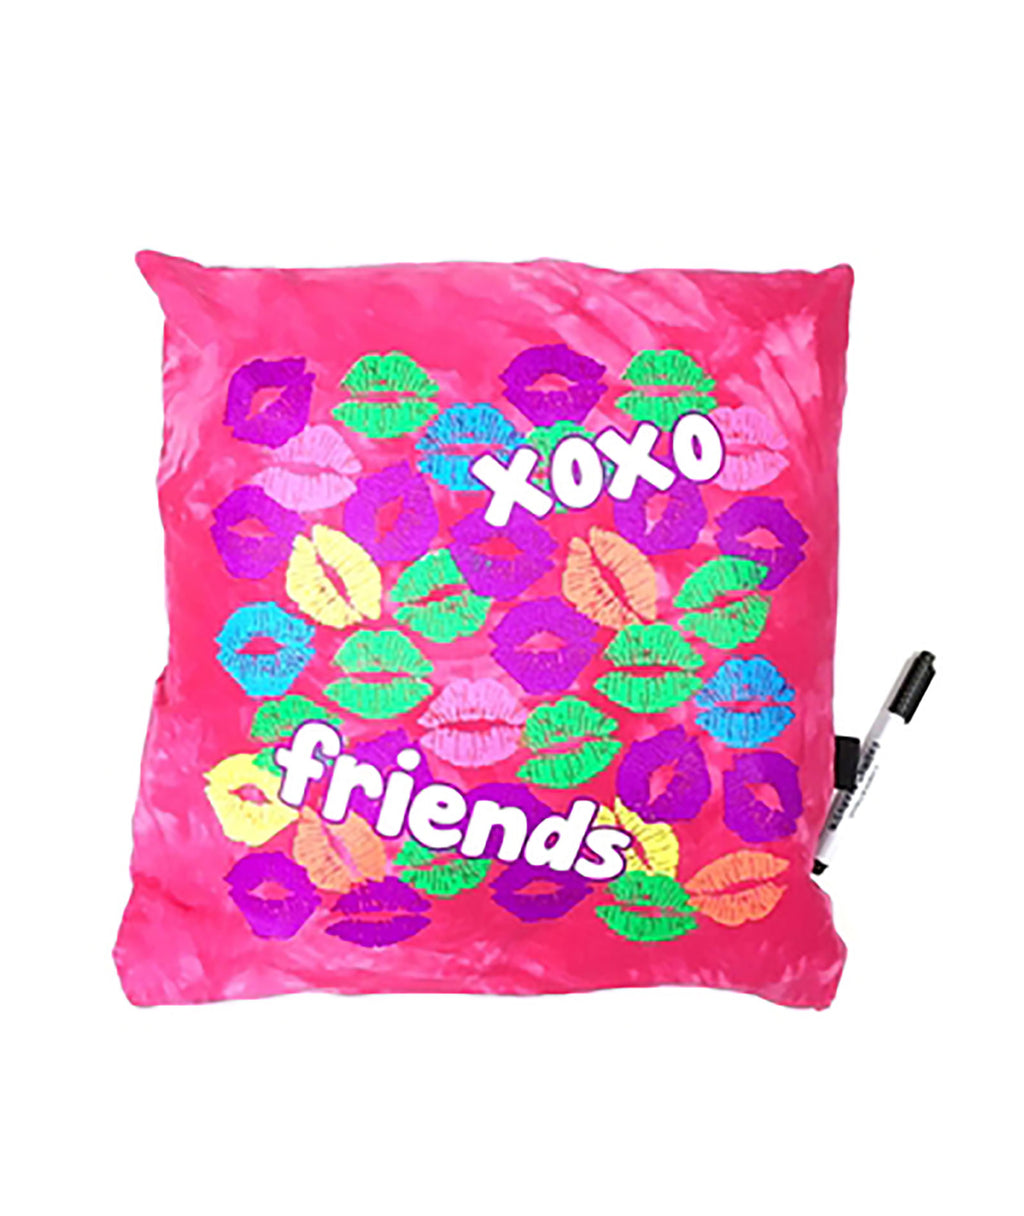 Confetti and Friends Turquoise XOXO Autograph Pillow